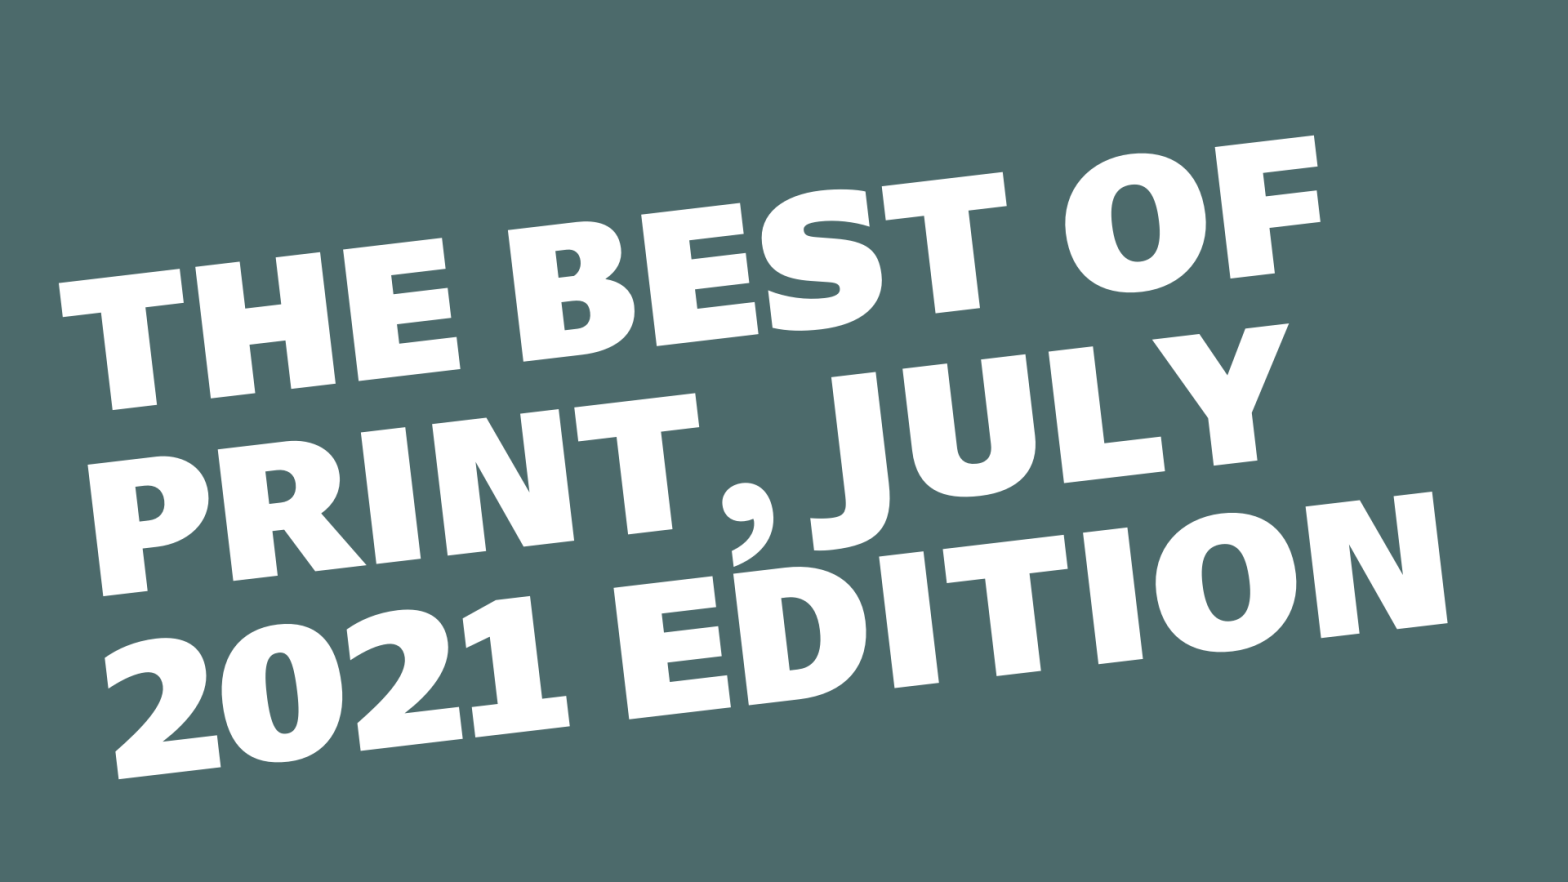 Thumbnail for The Best of PRINT, July 2021 Edition